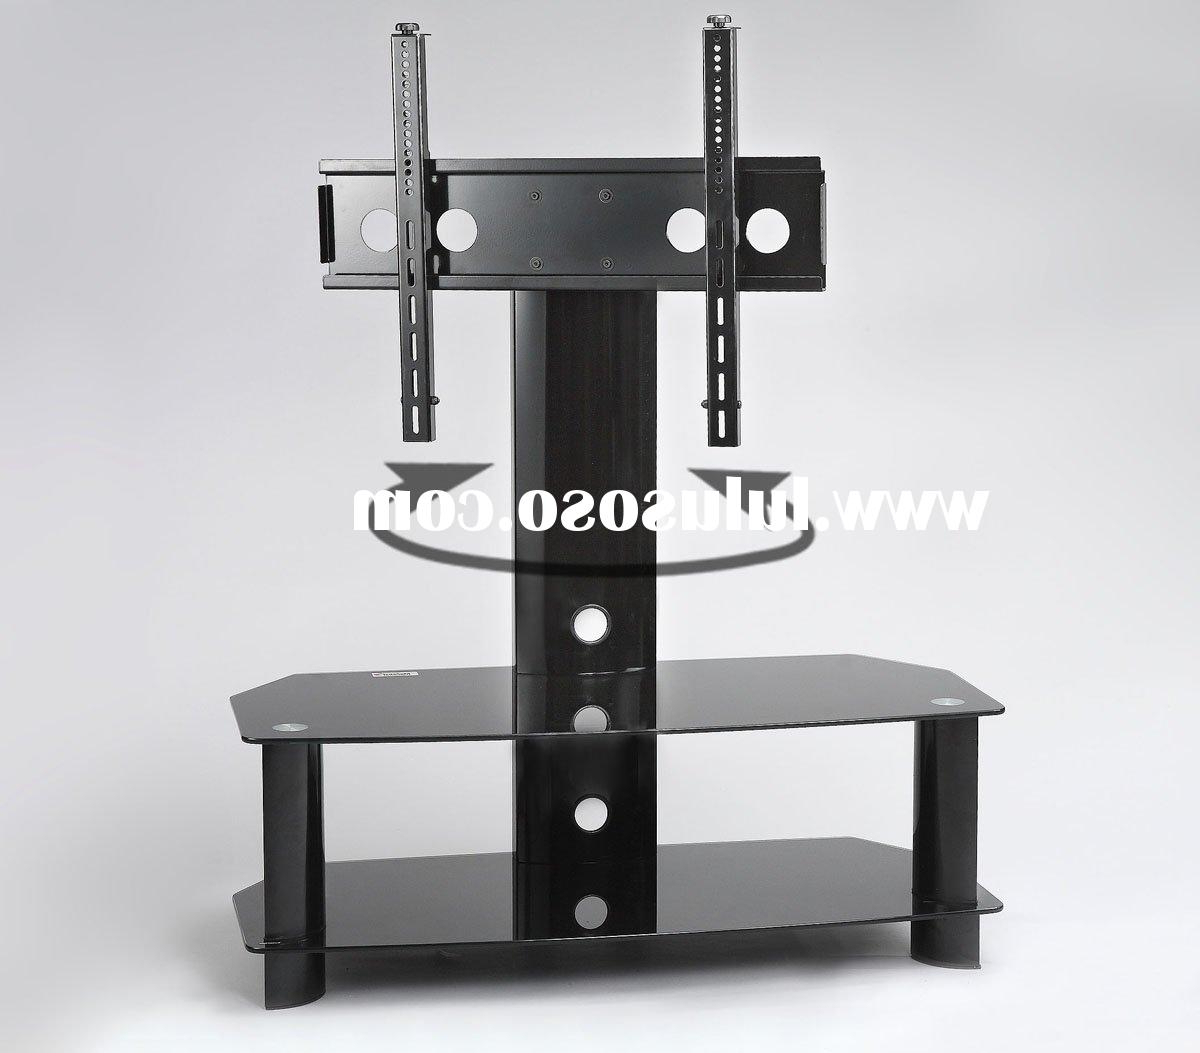 Vizio Tv Stand Amazon Swivel Mount With Built In Base Cabinet Doors Regarding Most Current Tv Stands Swivel Mount (Gallery 2 of 20)